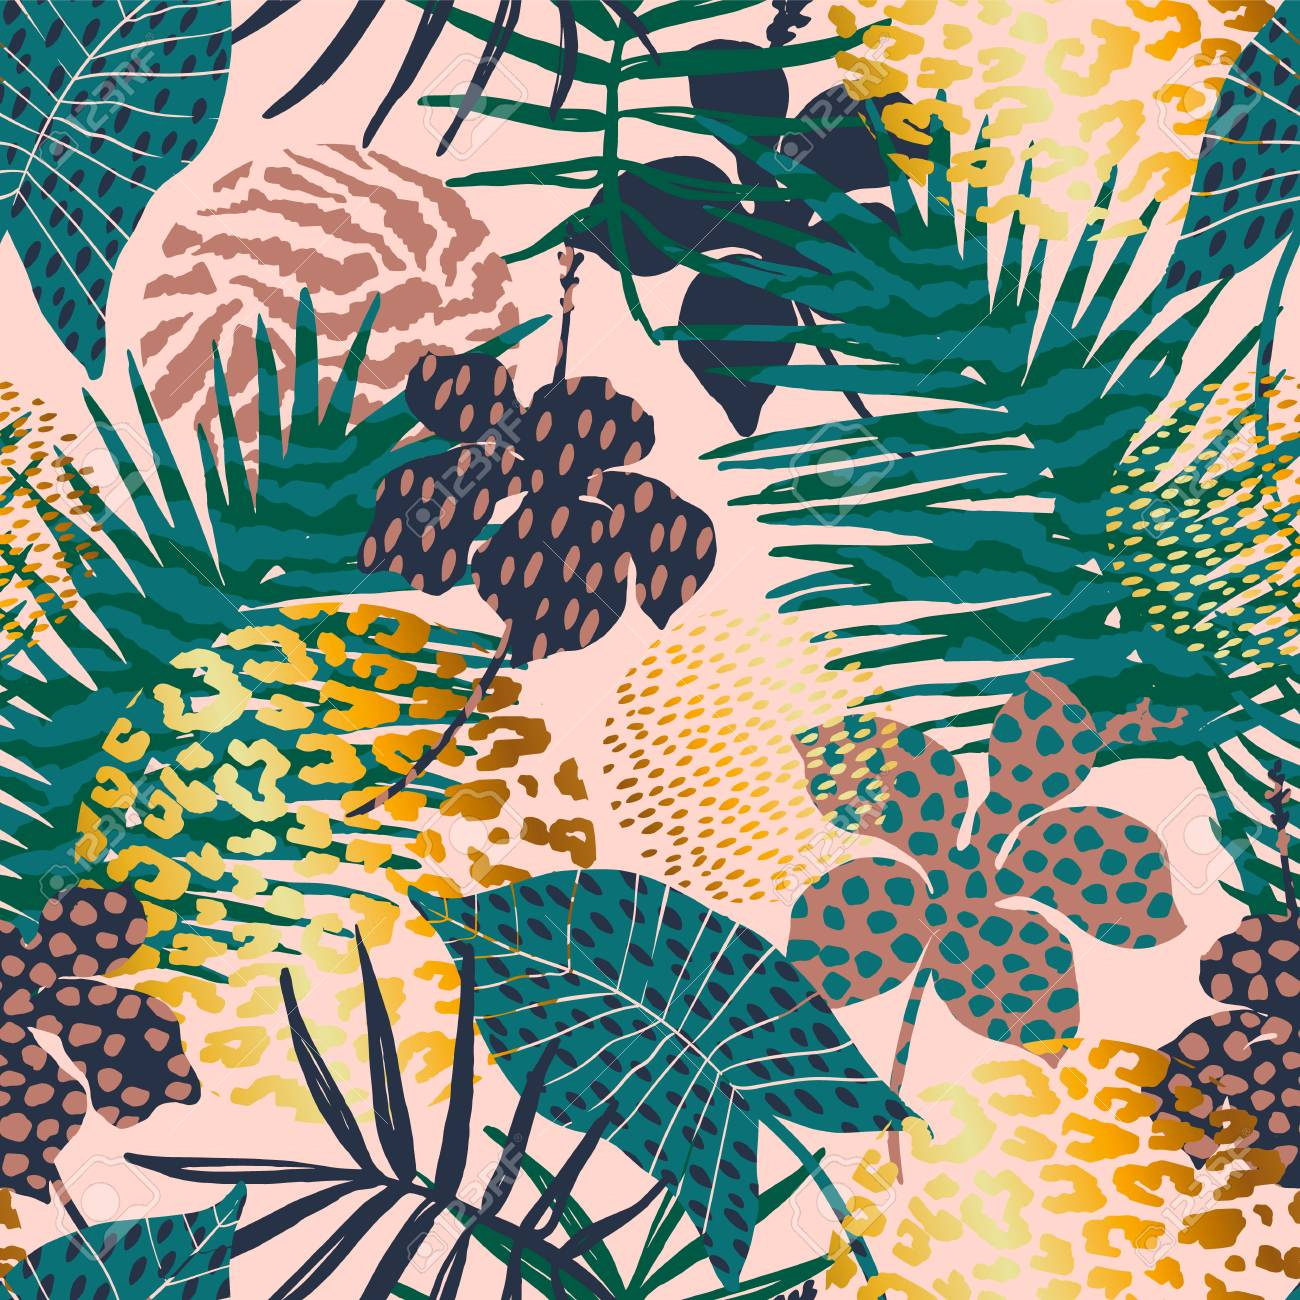 Trendy seamless exotic pattern with palm, animal prints and hand drawn textures. - 94820536